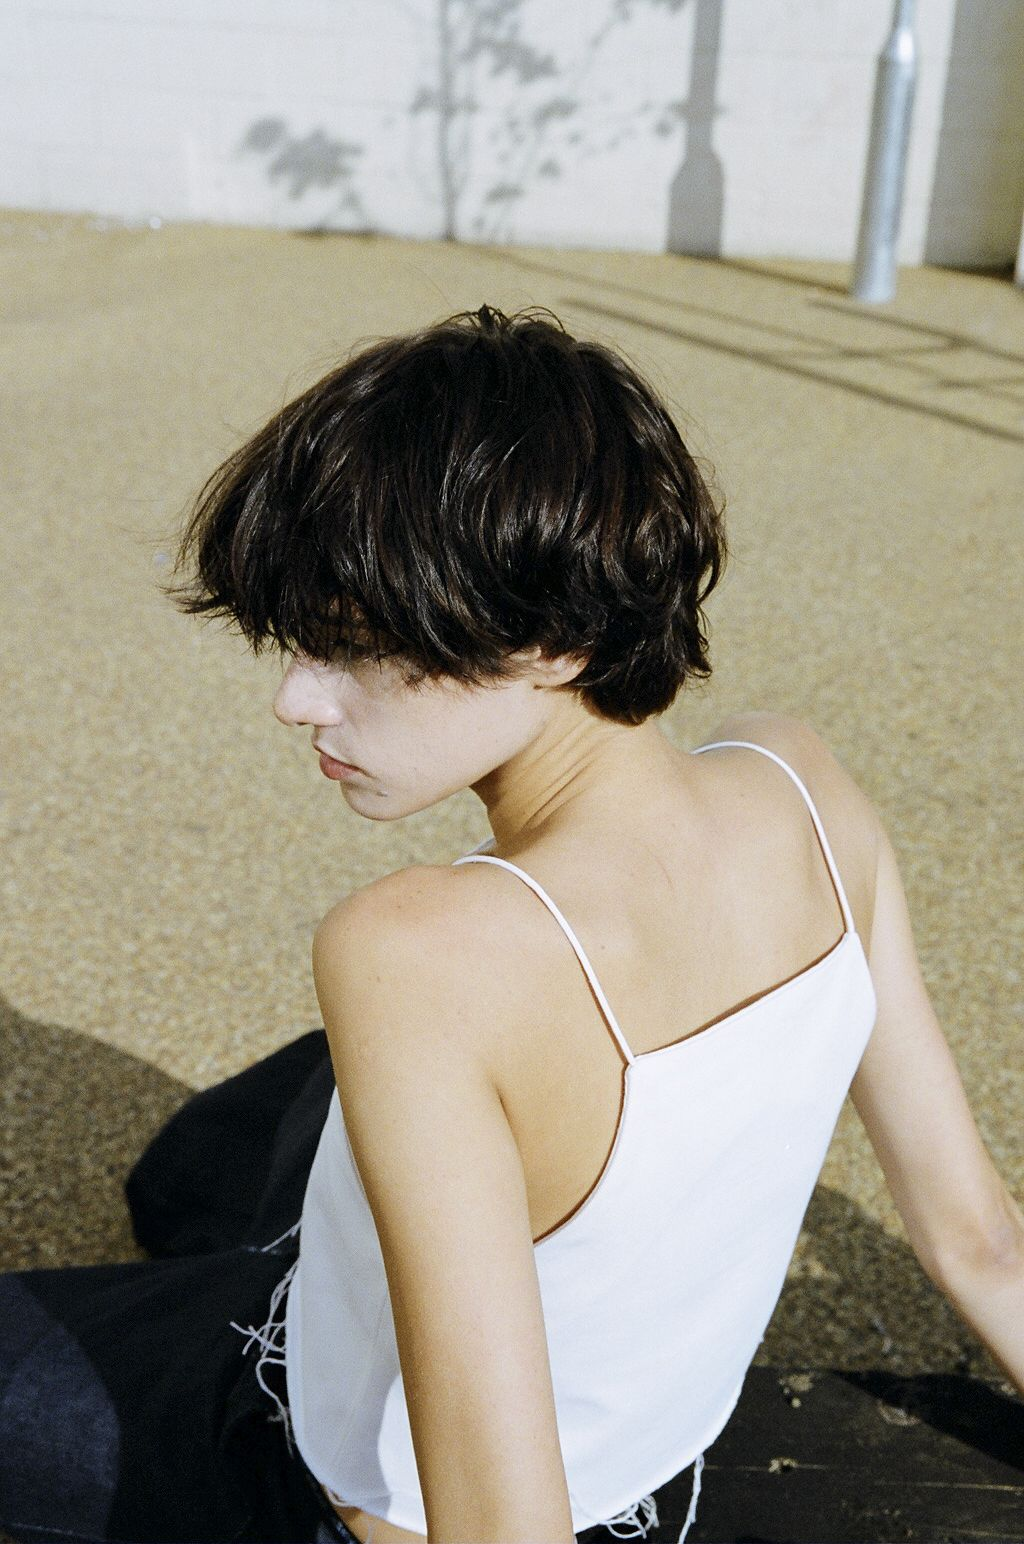 Boy like haircuts pin by nanako abe on hair  pinterest  short hair shorts and hair